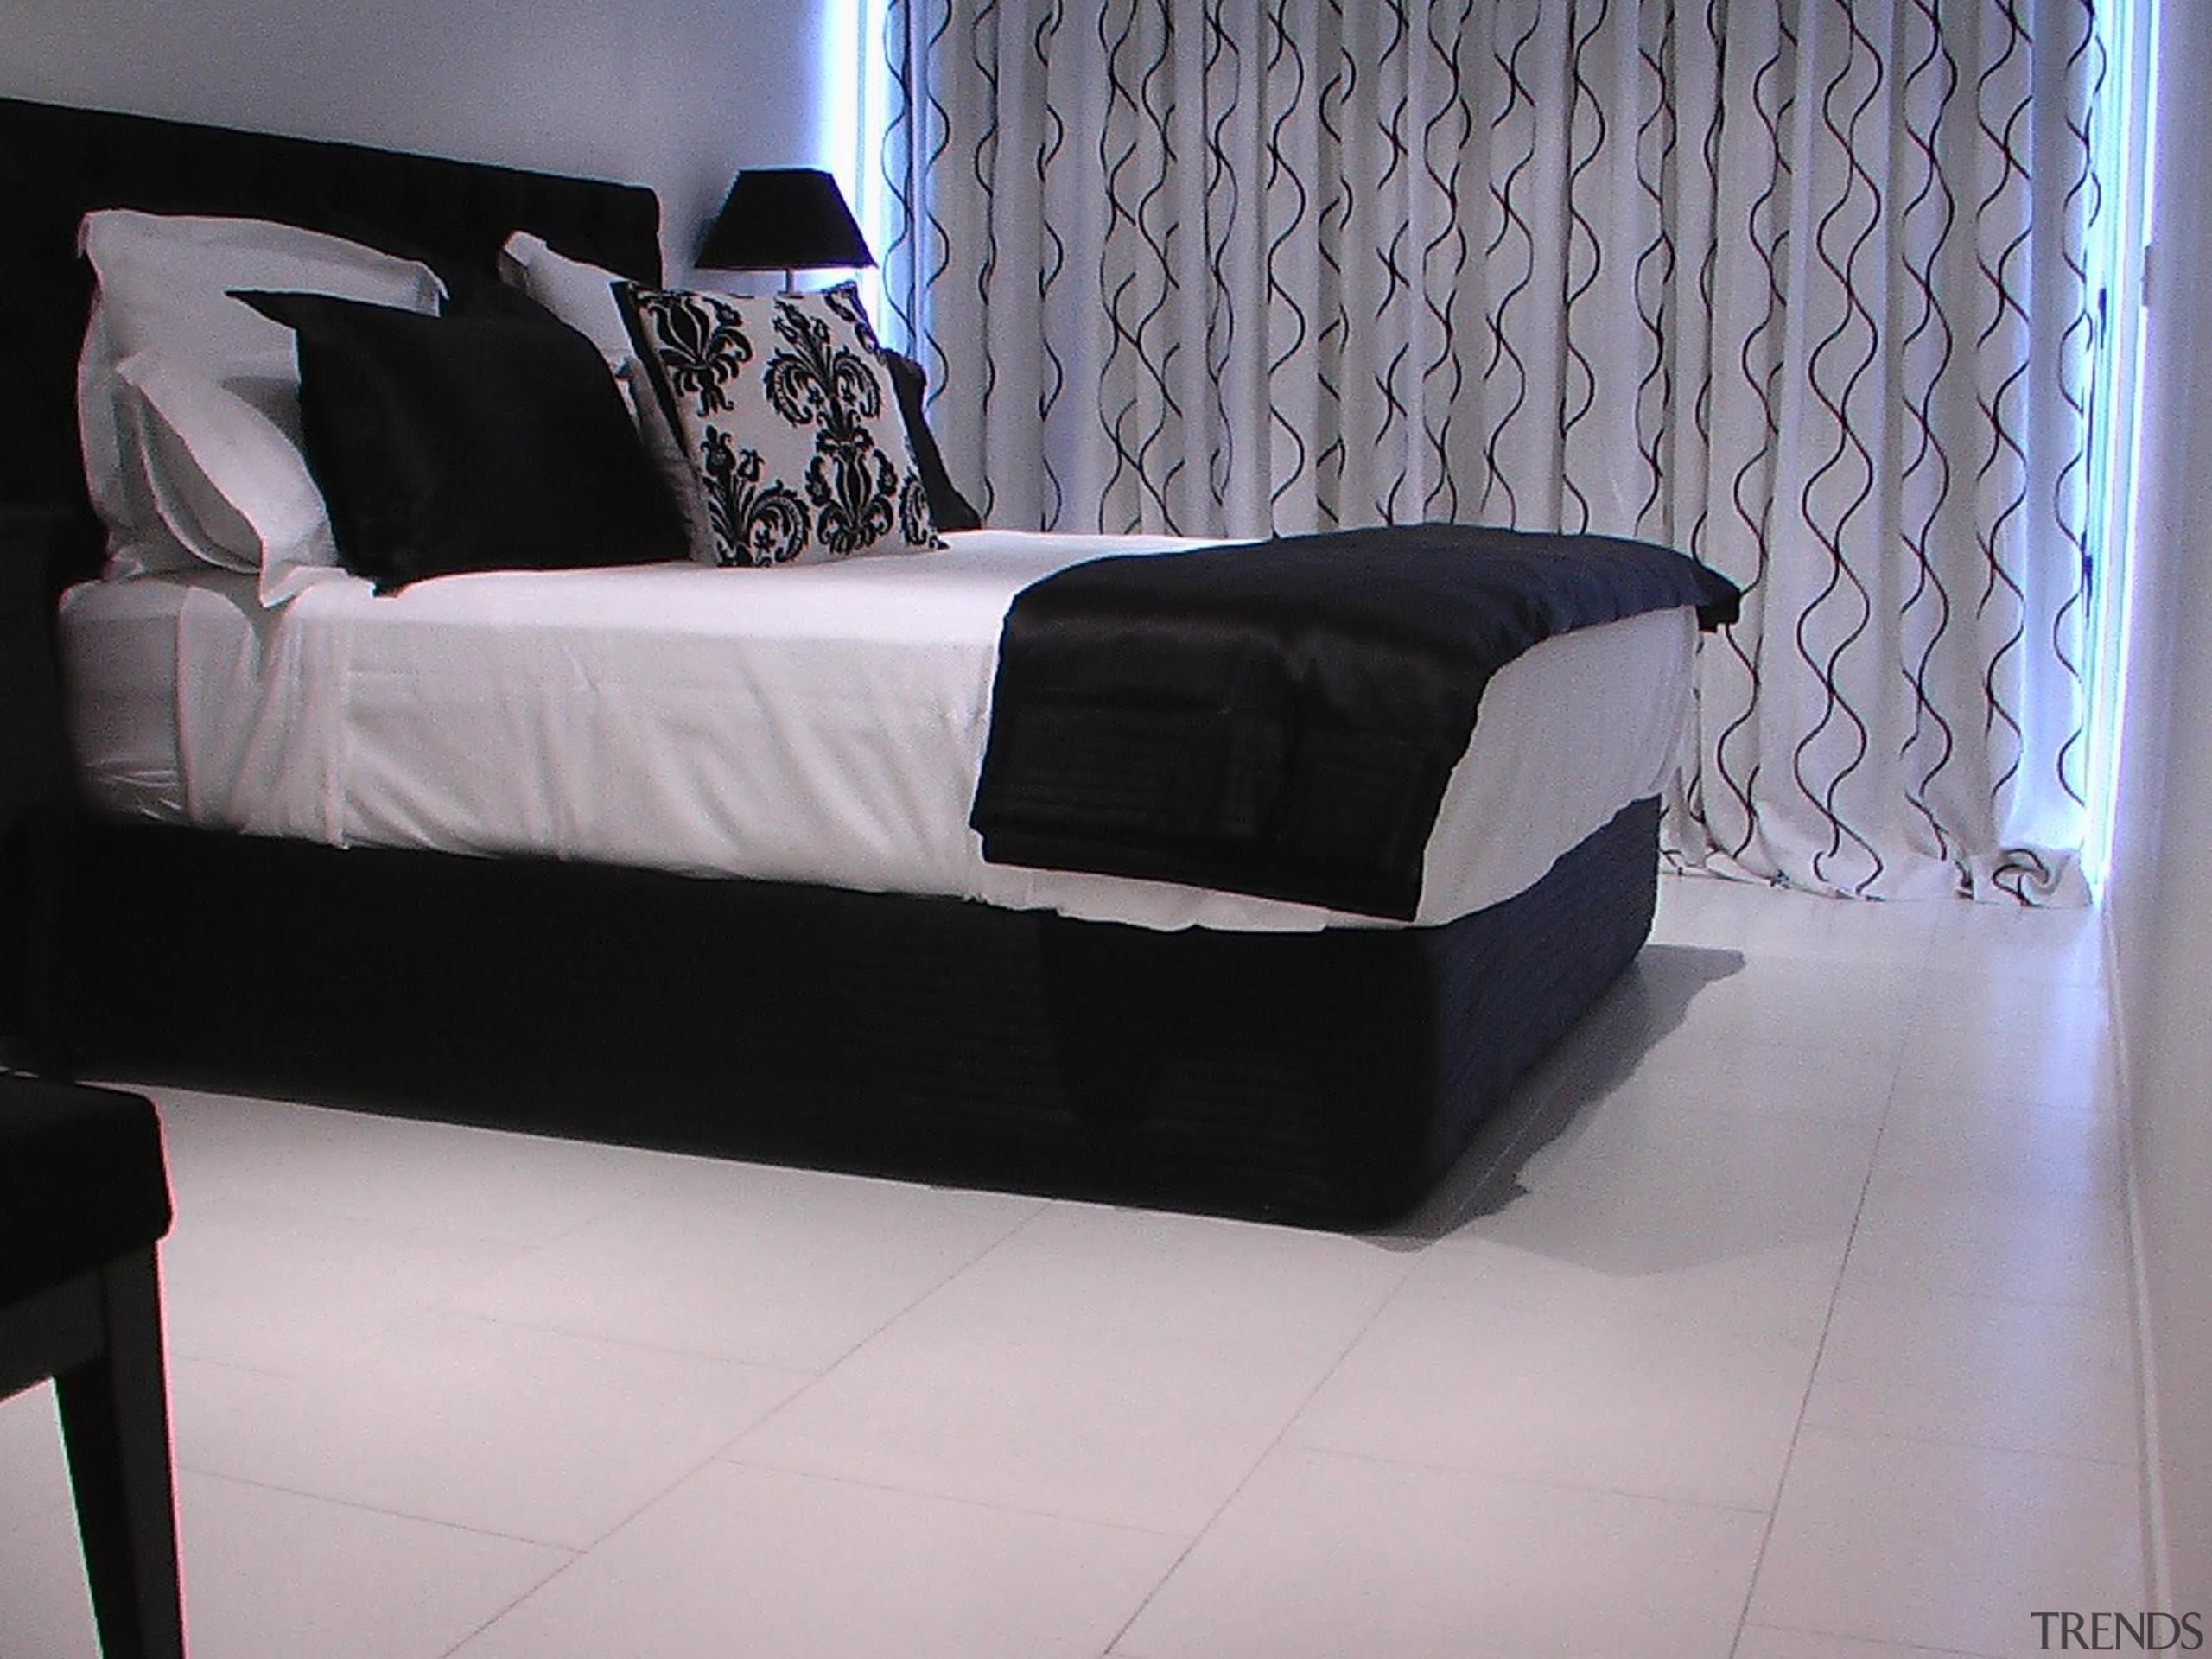 Cork Concepts provides luxury eco flooring in unlimited angle, bed, bed frame, black, box spring, chaise longue, couch, floor, flooring, furniture, interior design, mattress, product, product design, sofa bed, studio couch, gray, black